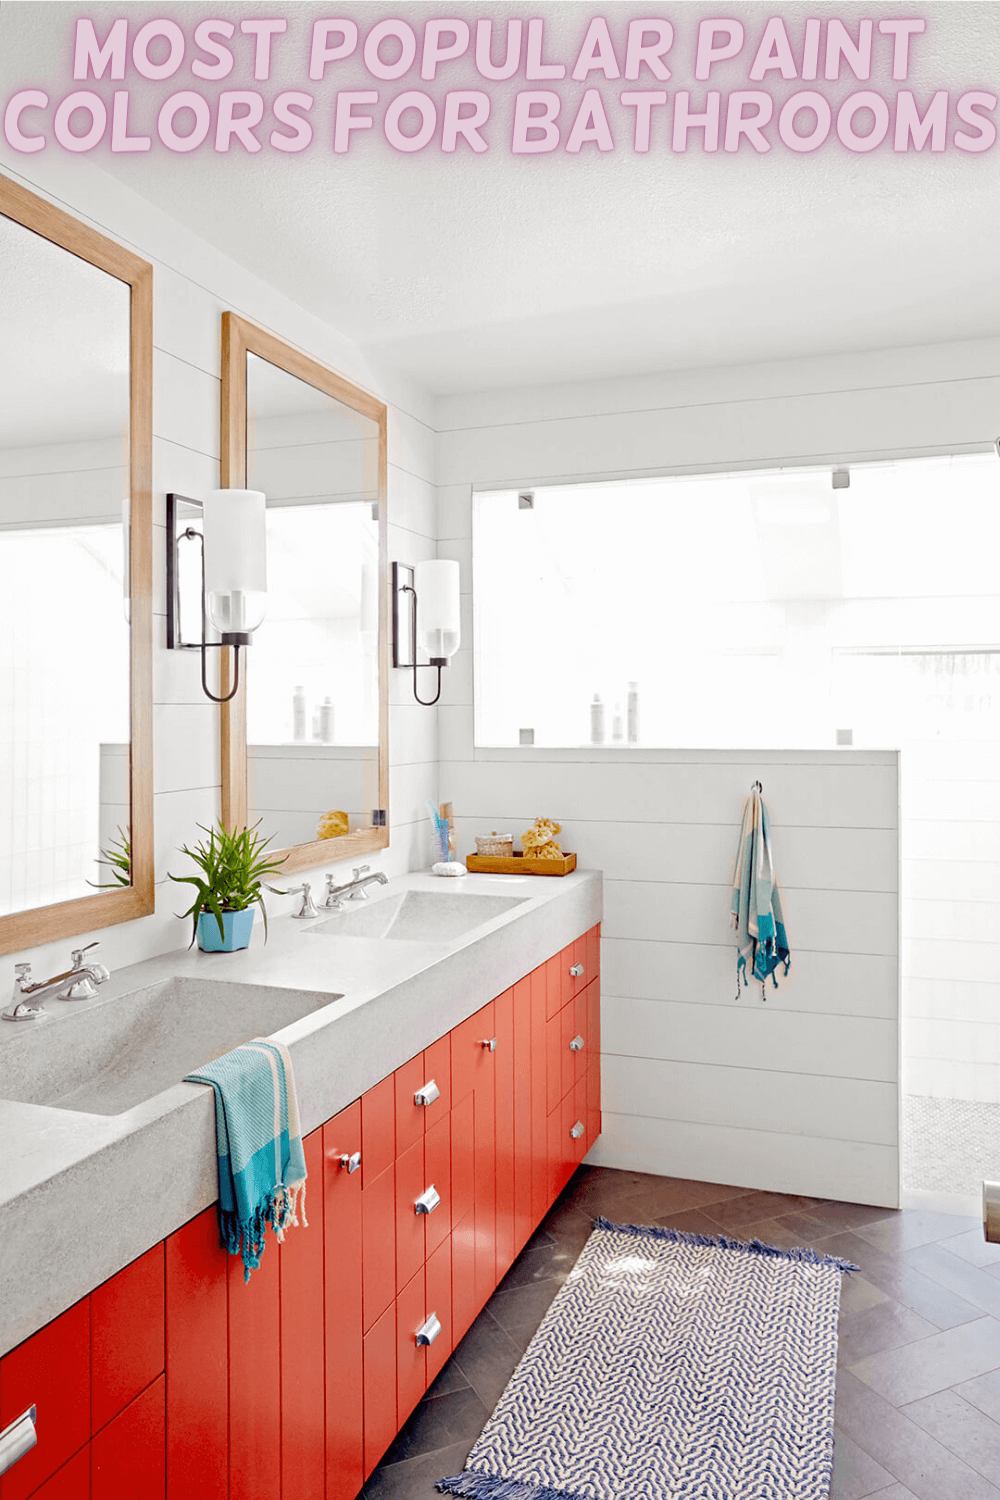 MOST POPULAR PAINT COLORS FOR BATHROOMS